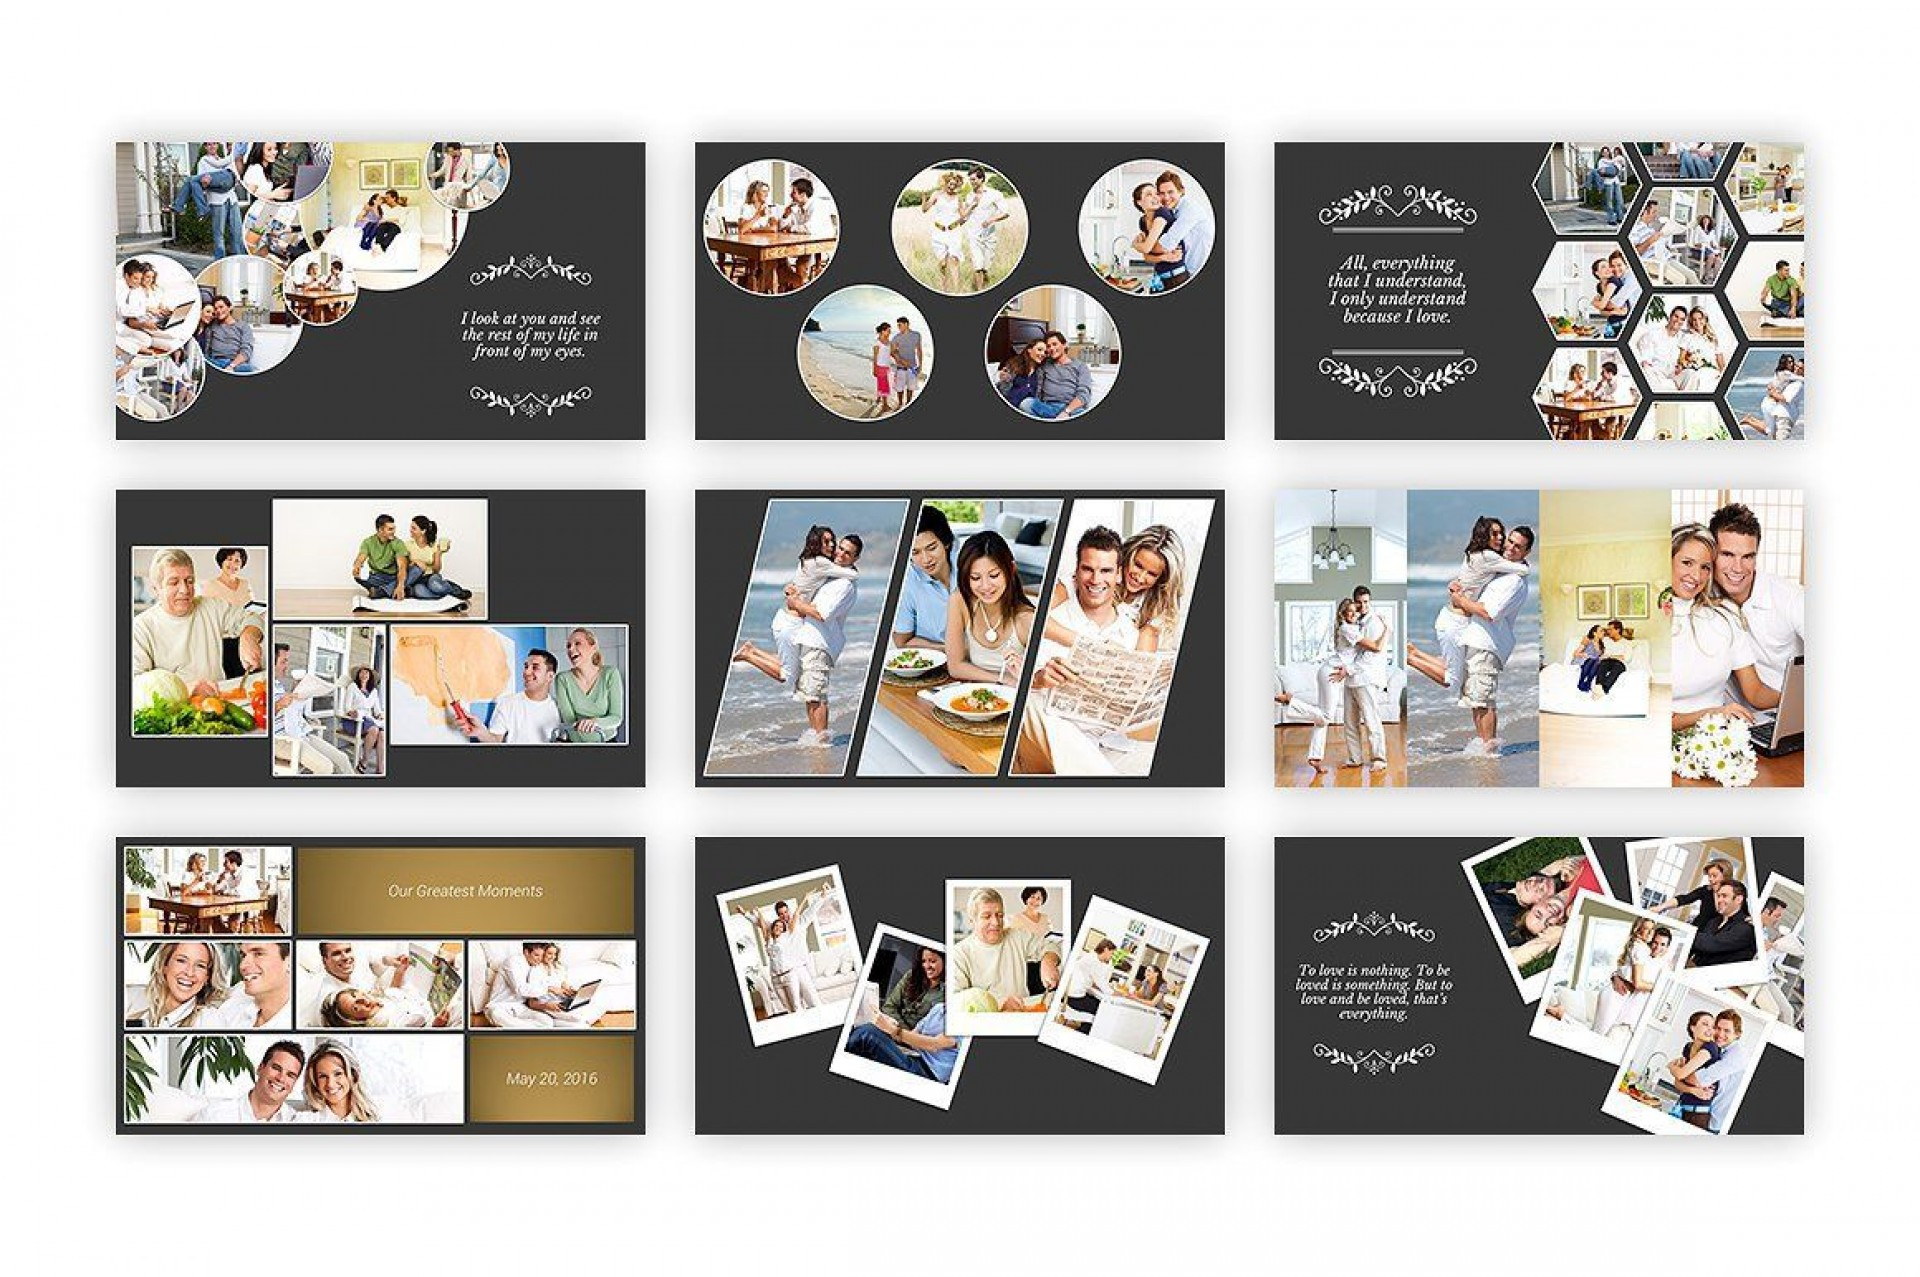 002 Astounding Free Photo Collage Template For Powerpoint Inspiration 1920